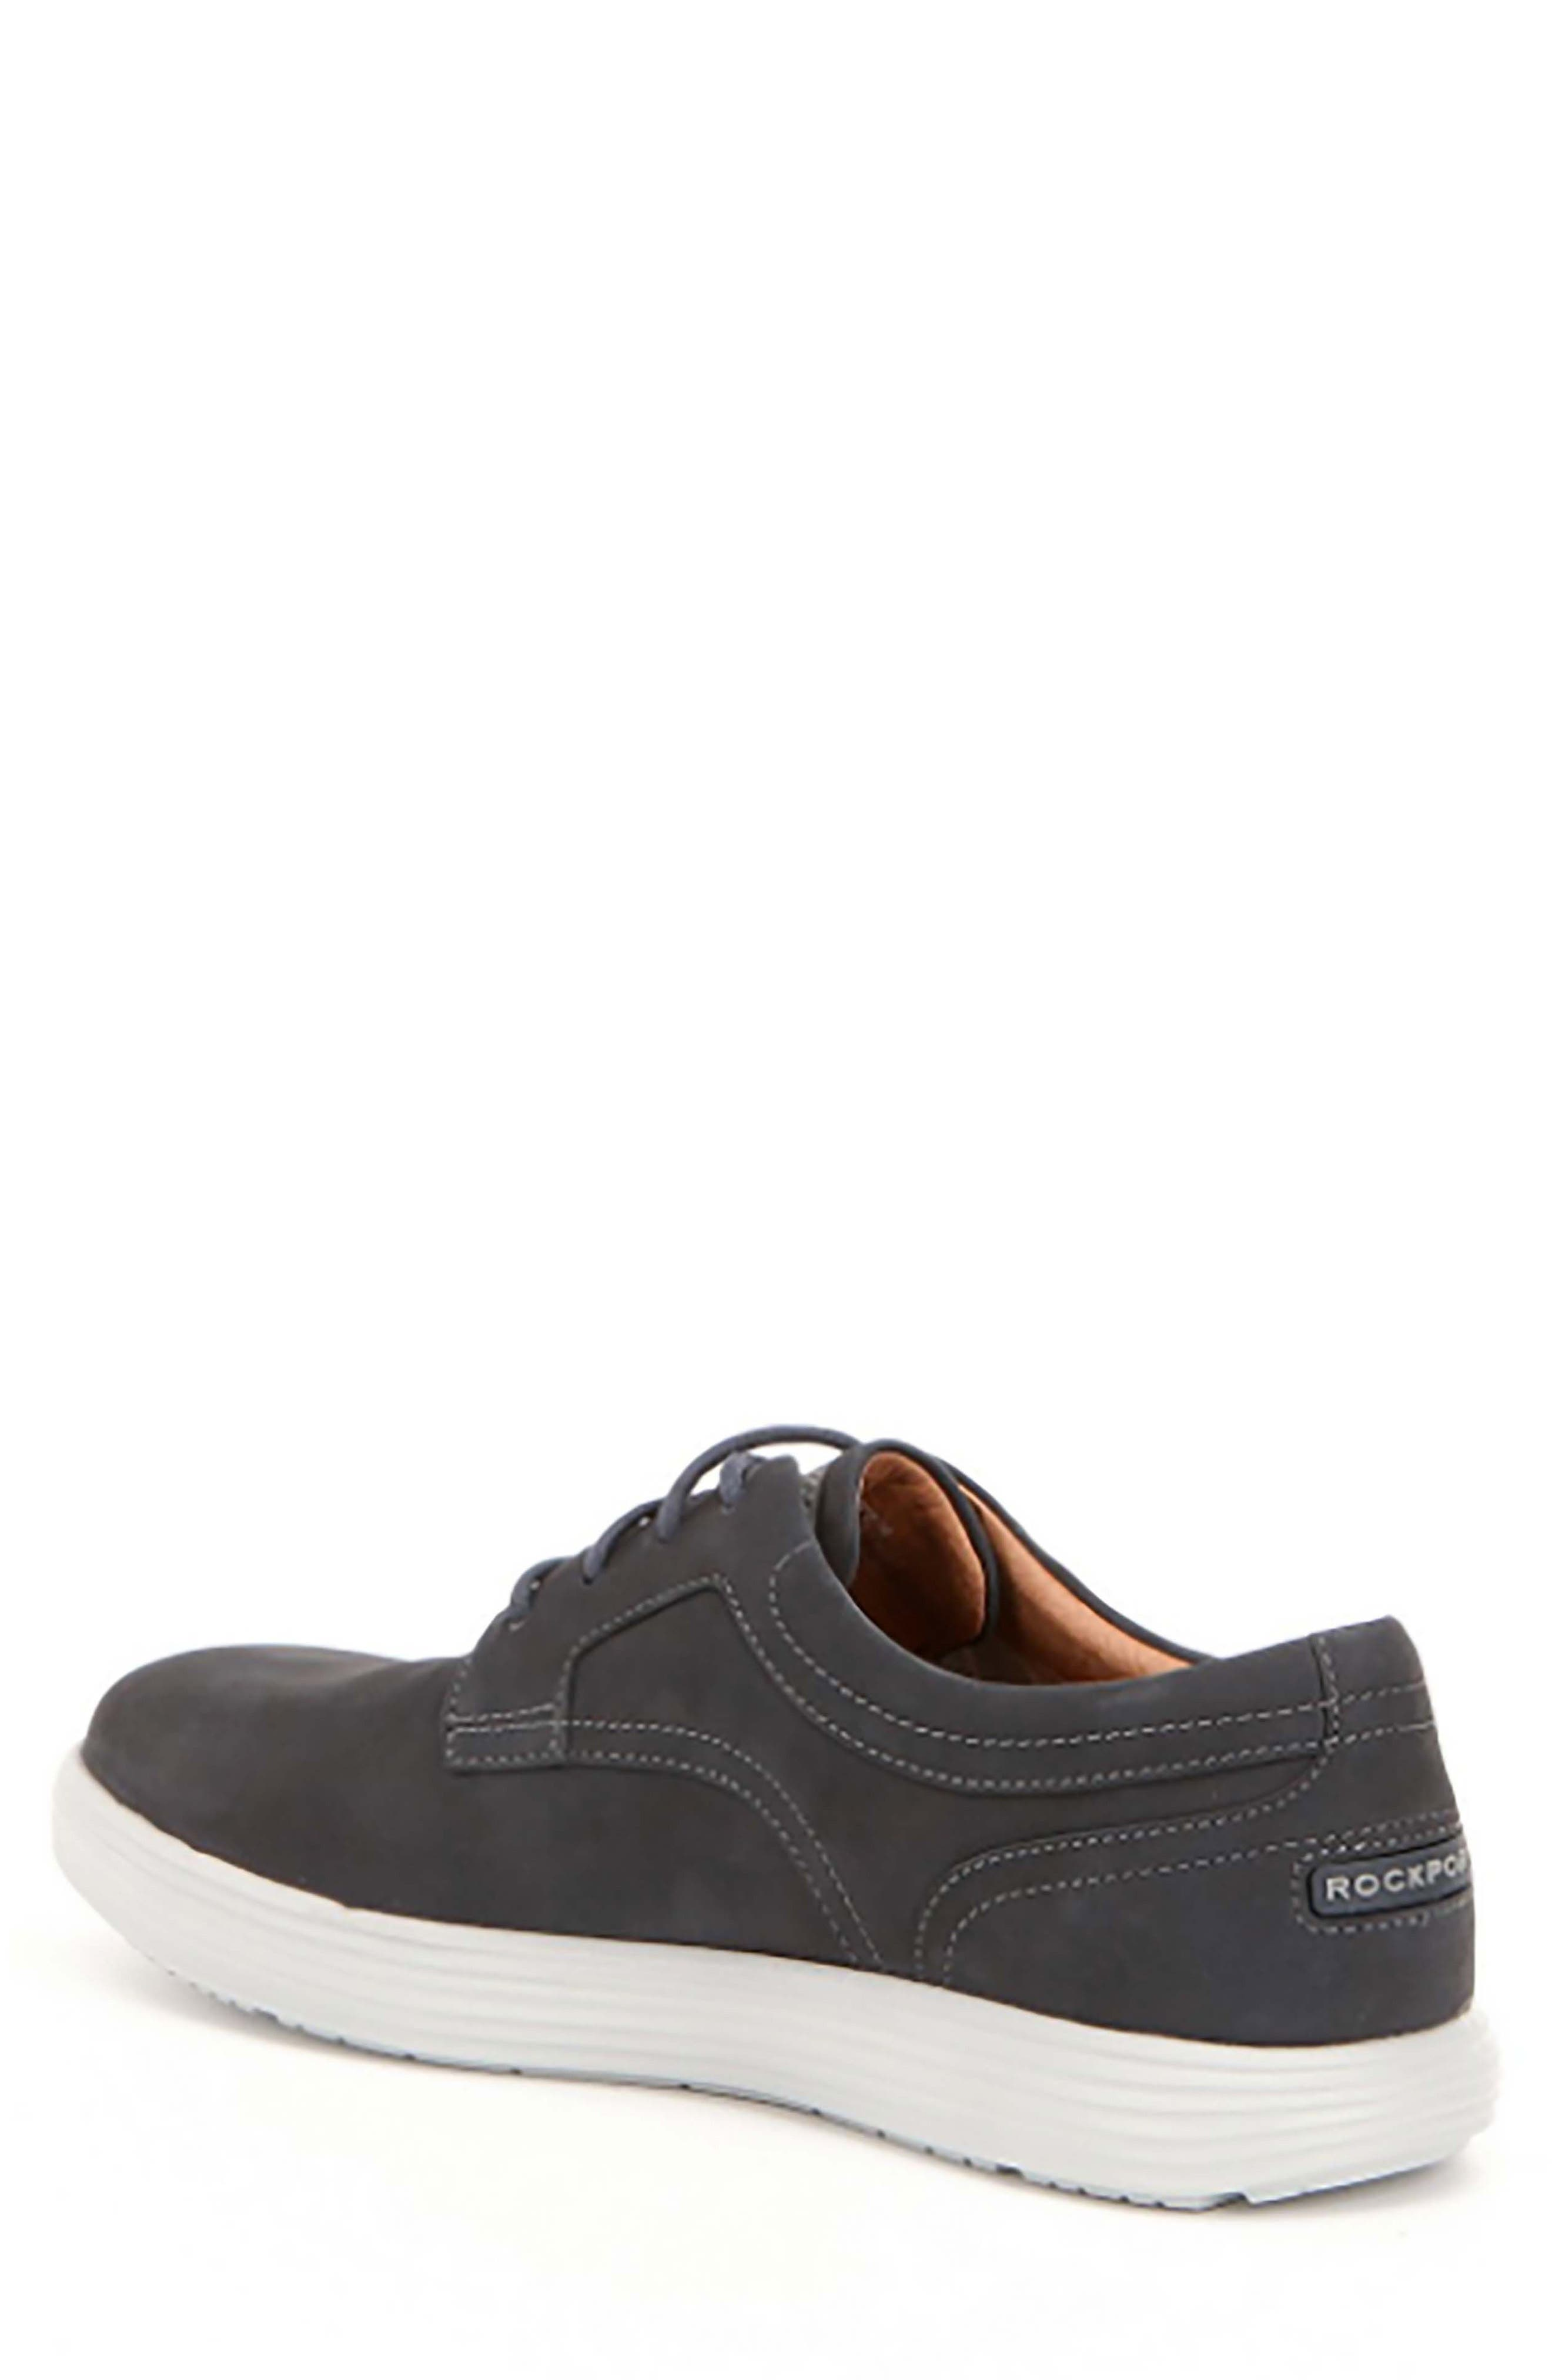 Thurston Sneaker,                             Alternate thumbnail 8, color,